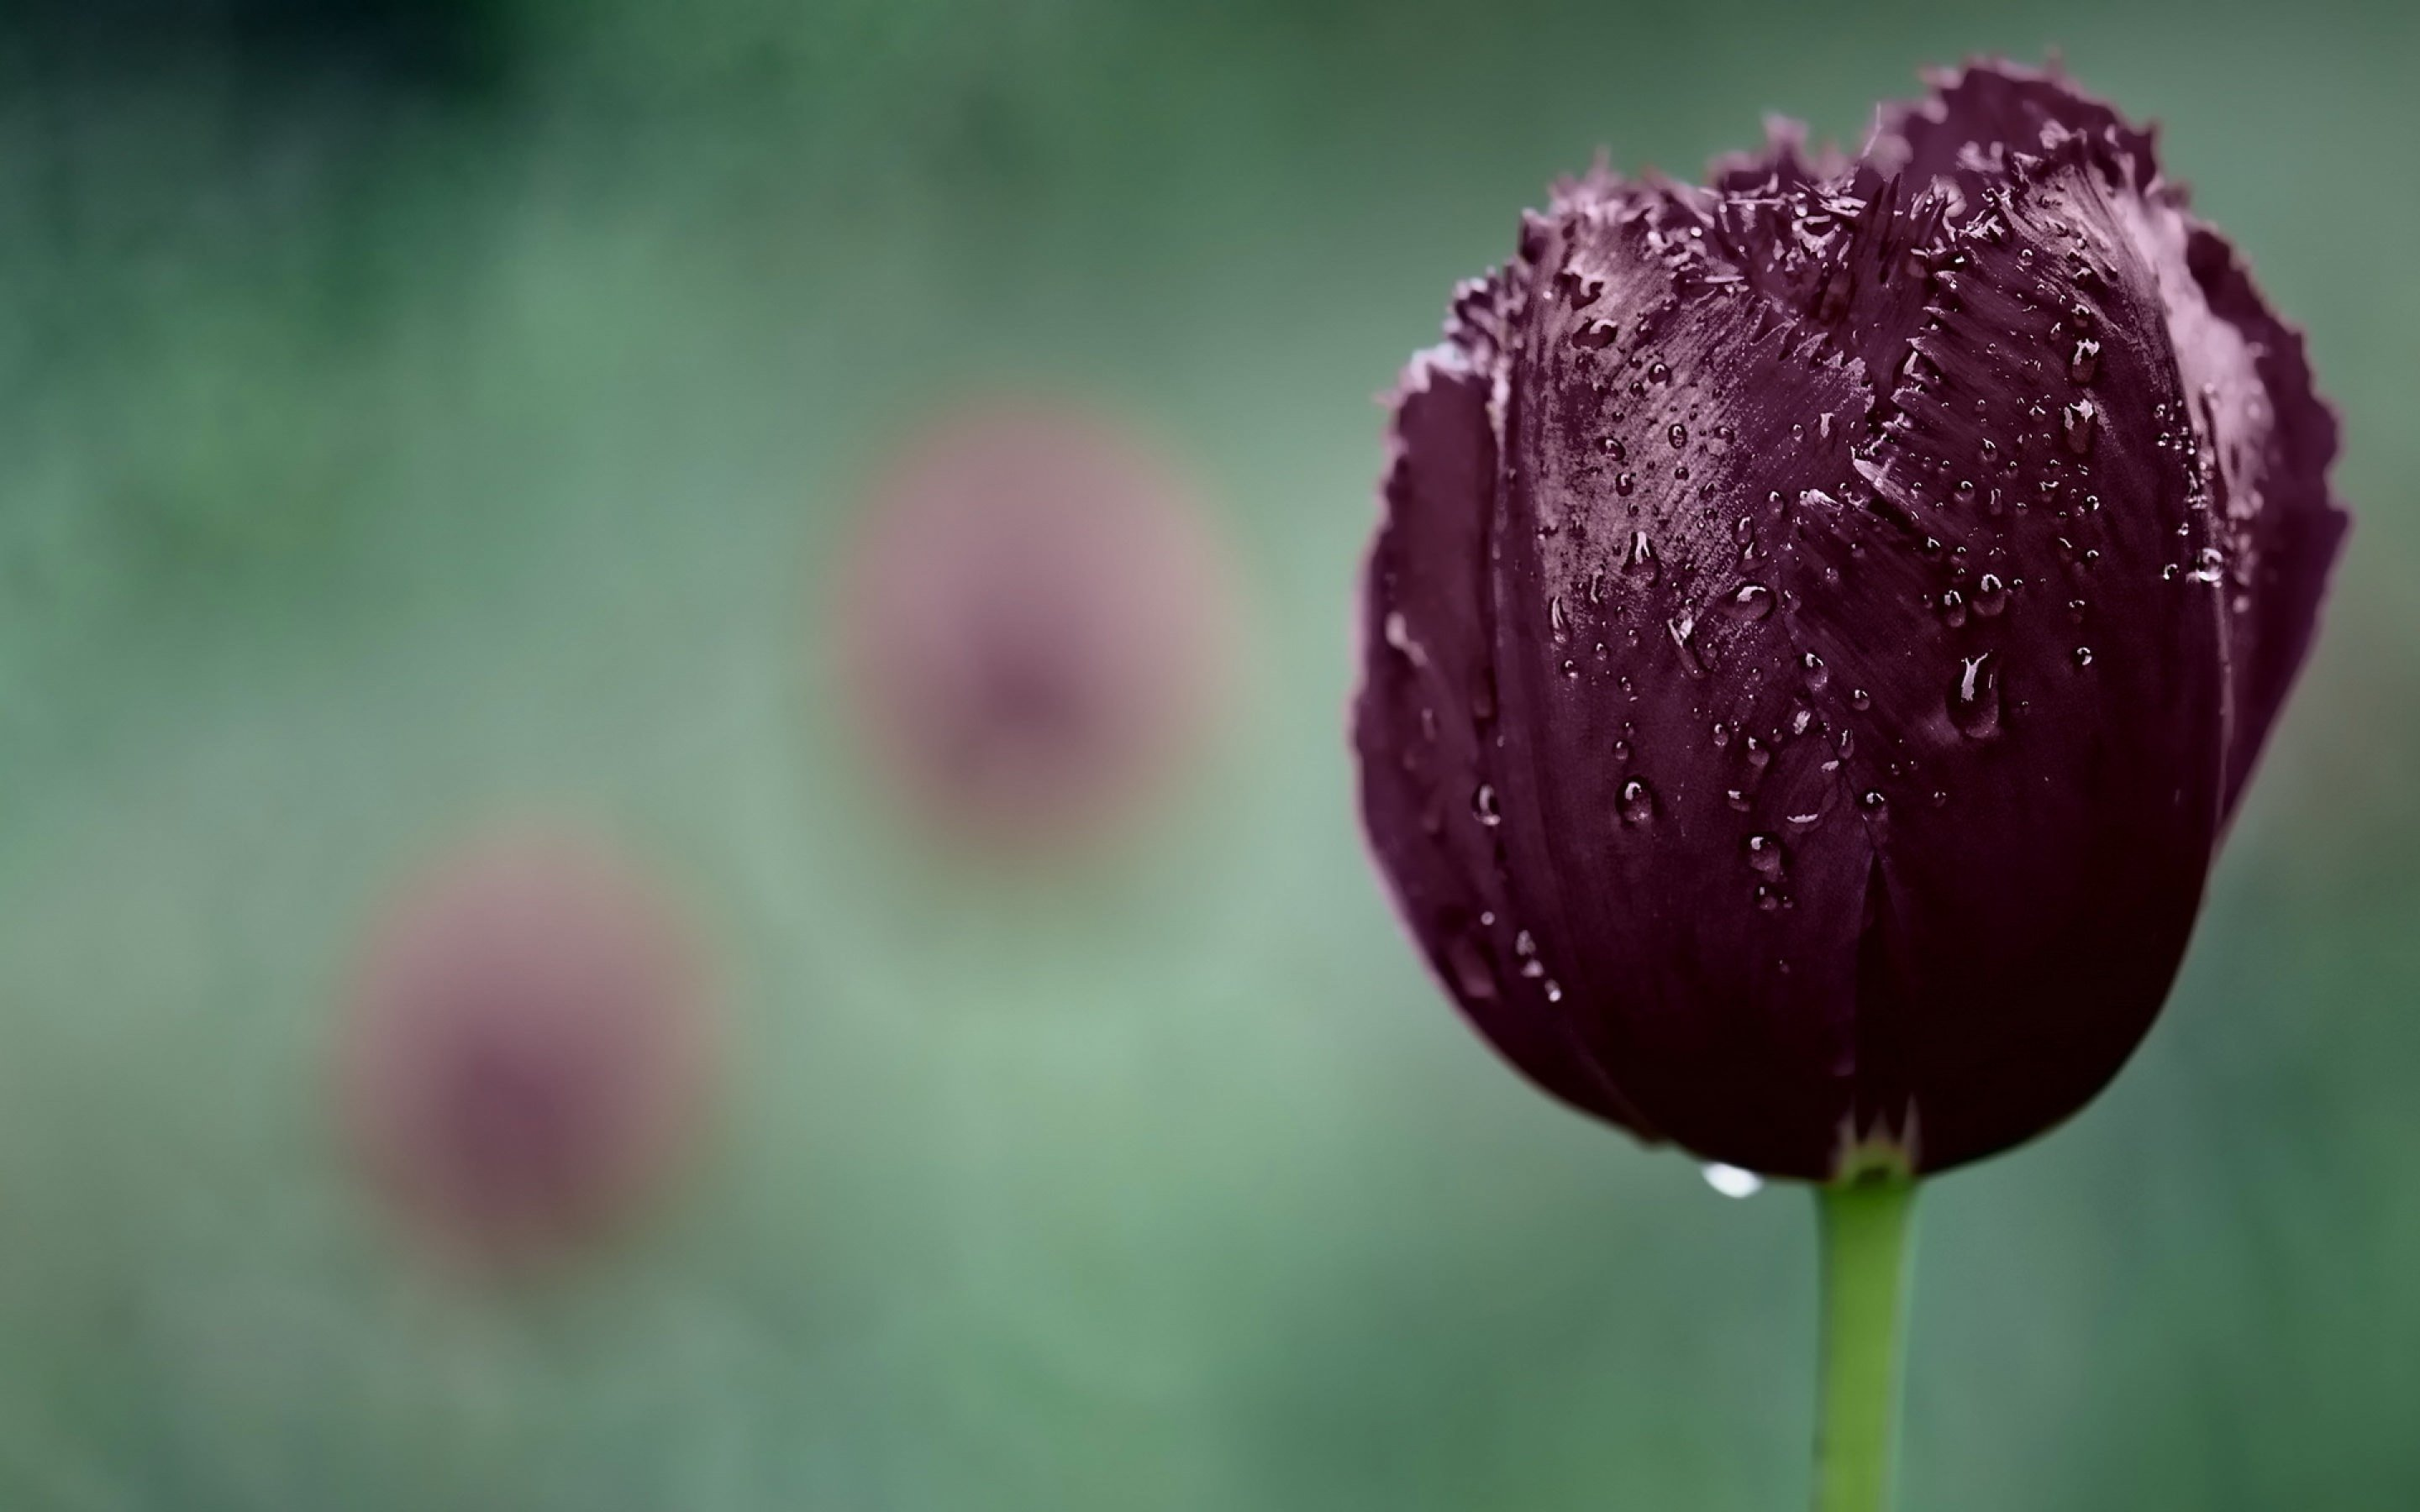 Deep Purple Tulip Wallpaper for Desktop 2880x1800